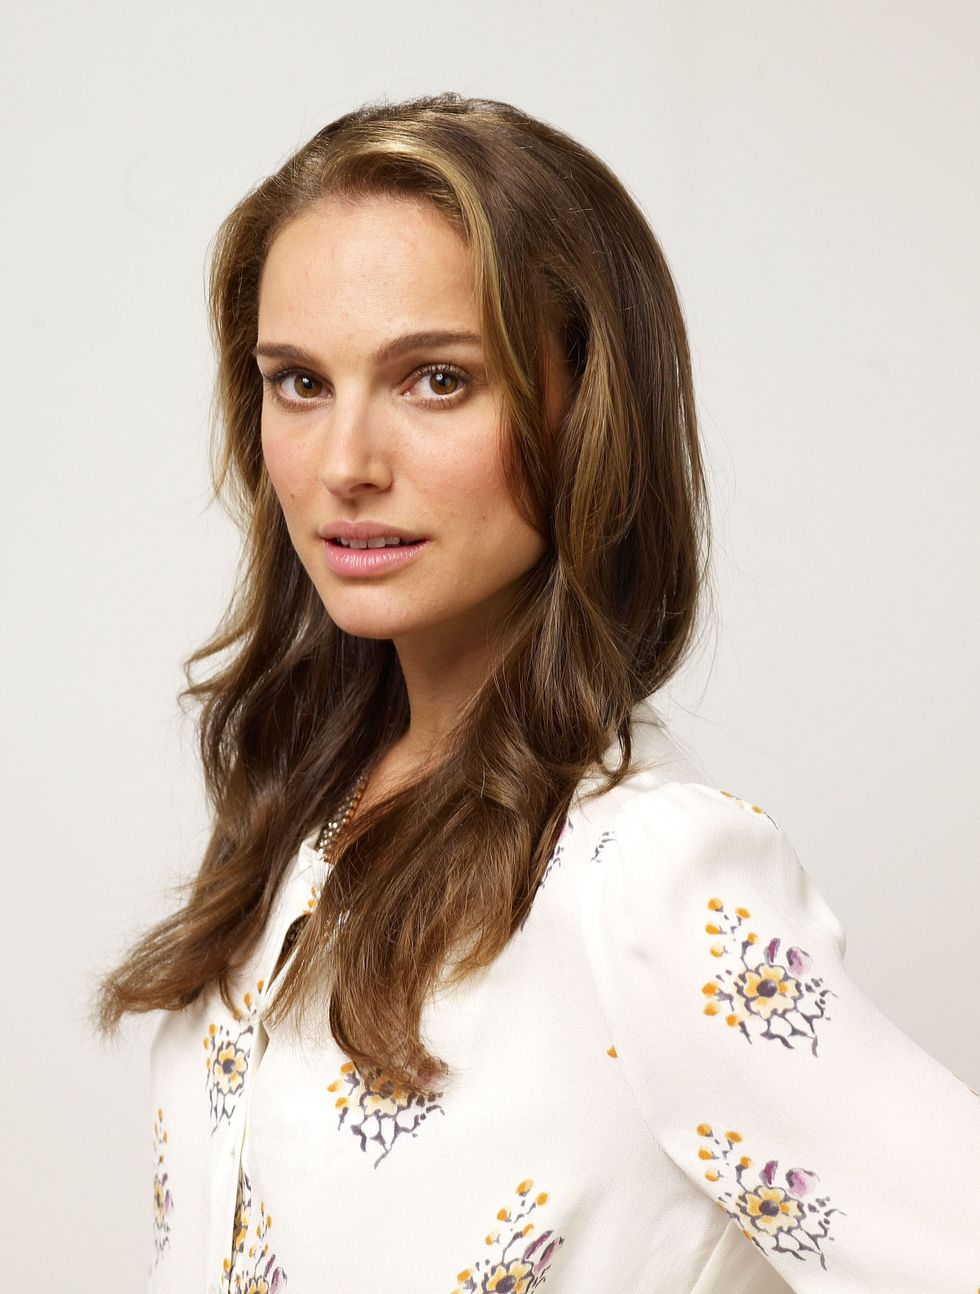 Natalie Portman's Medium-Brown Shade